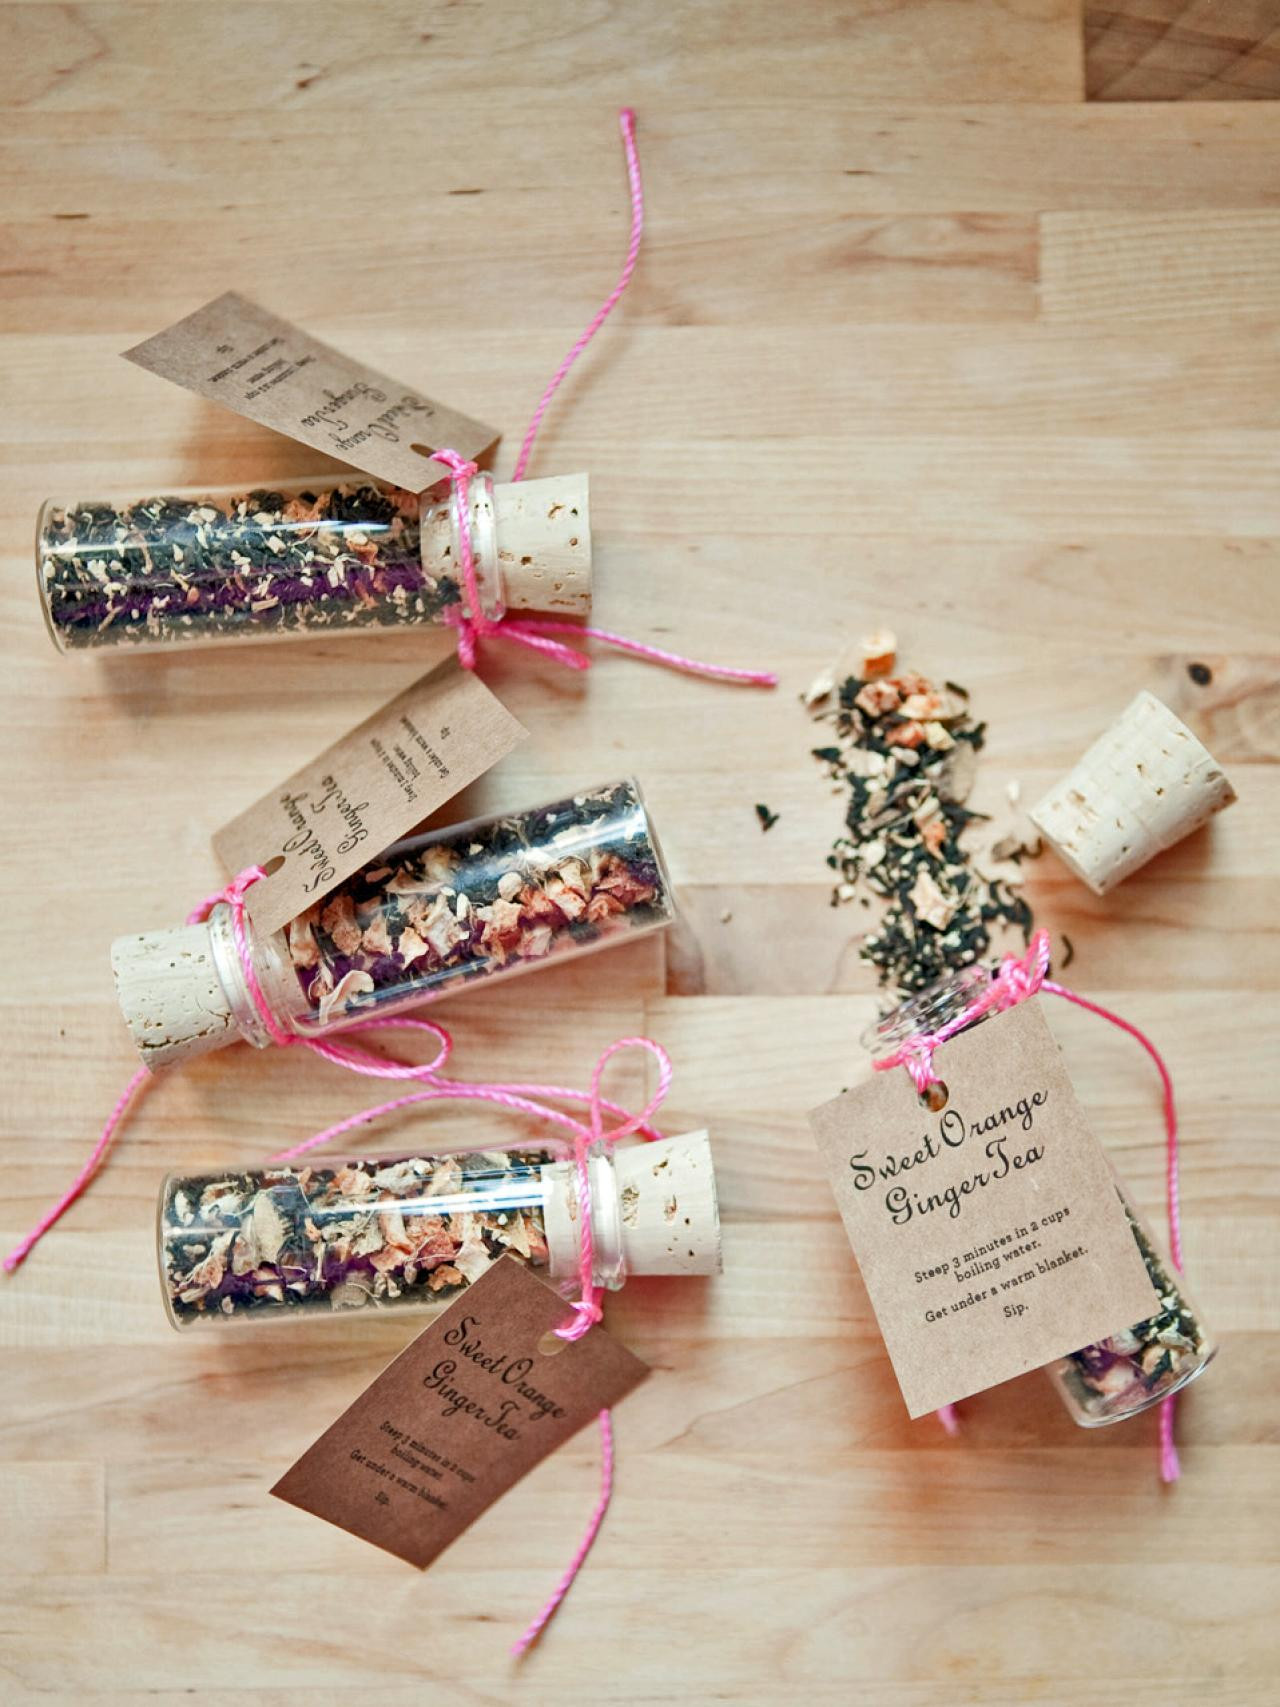 Best ideas about DIY Party Favors . Save or Pin 30 Festive DIY Holiday Party Favors Now.